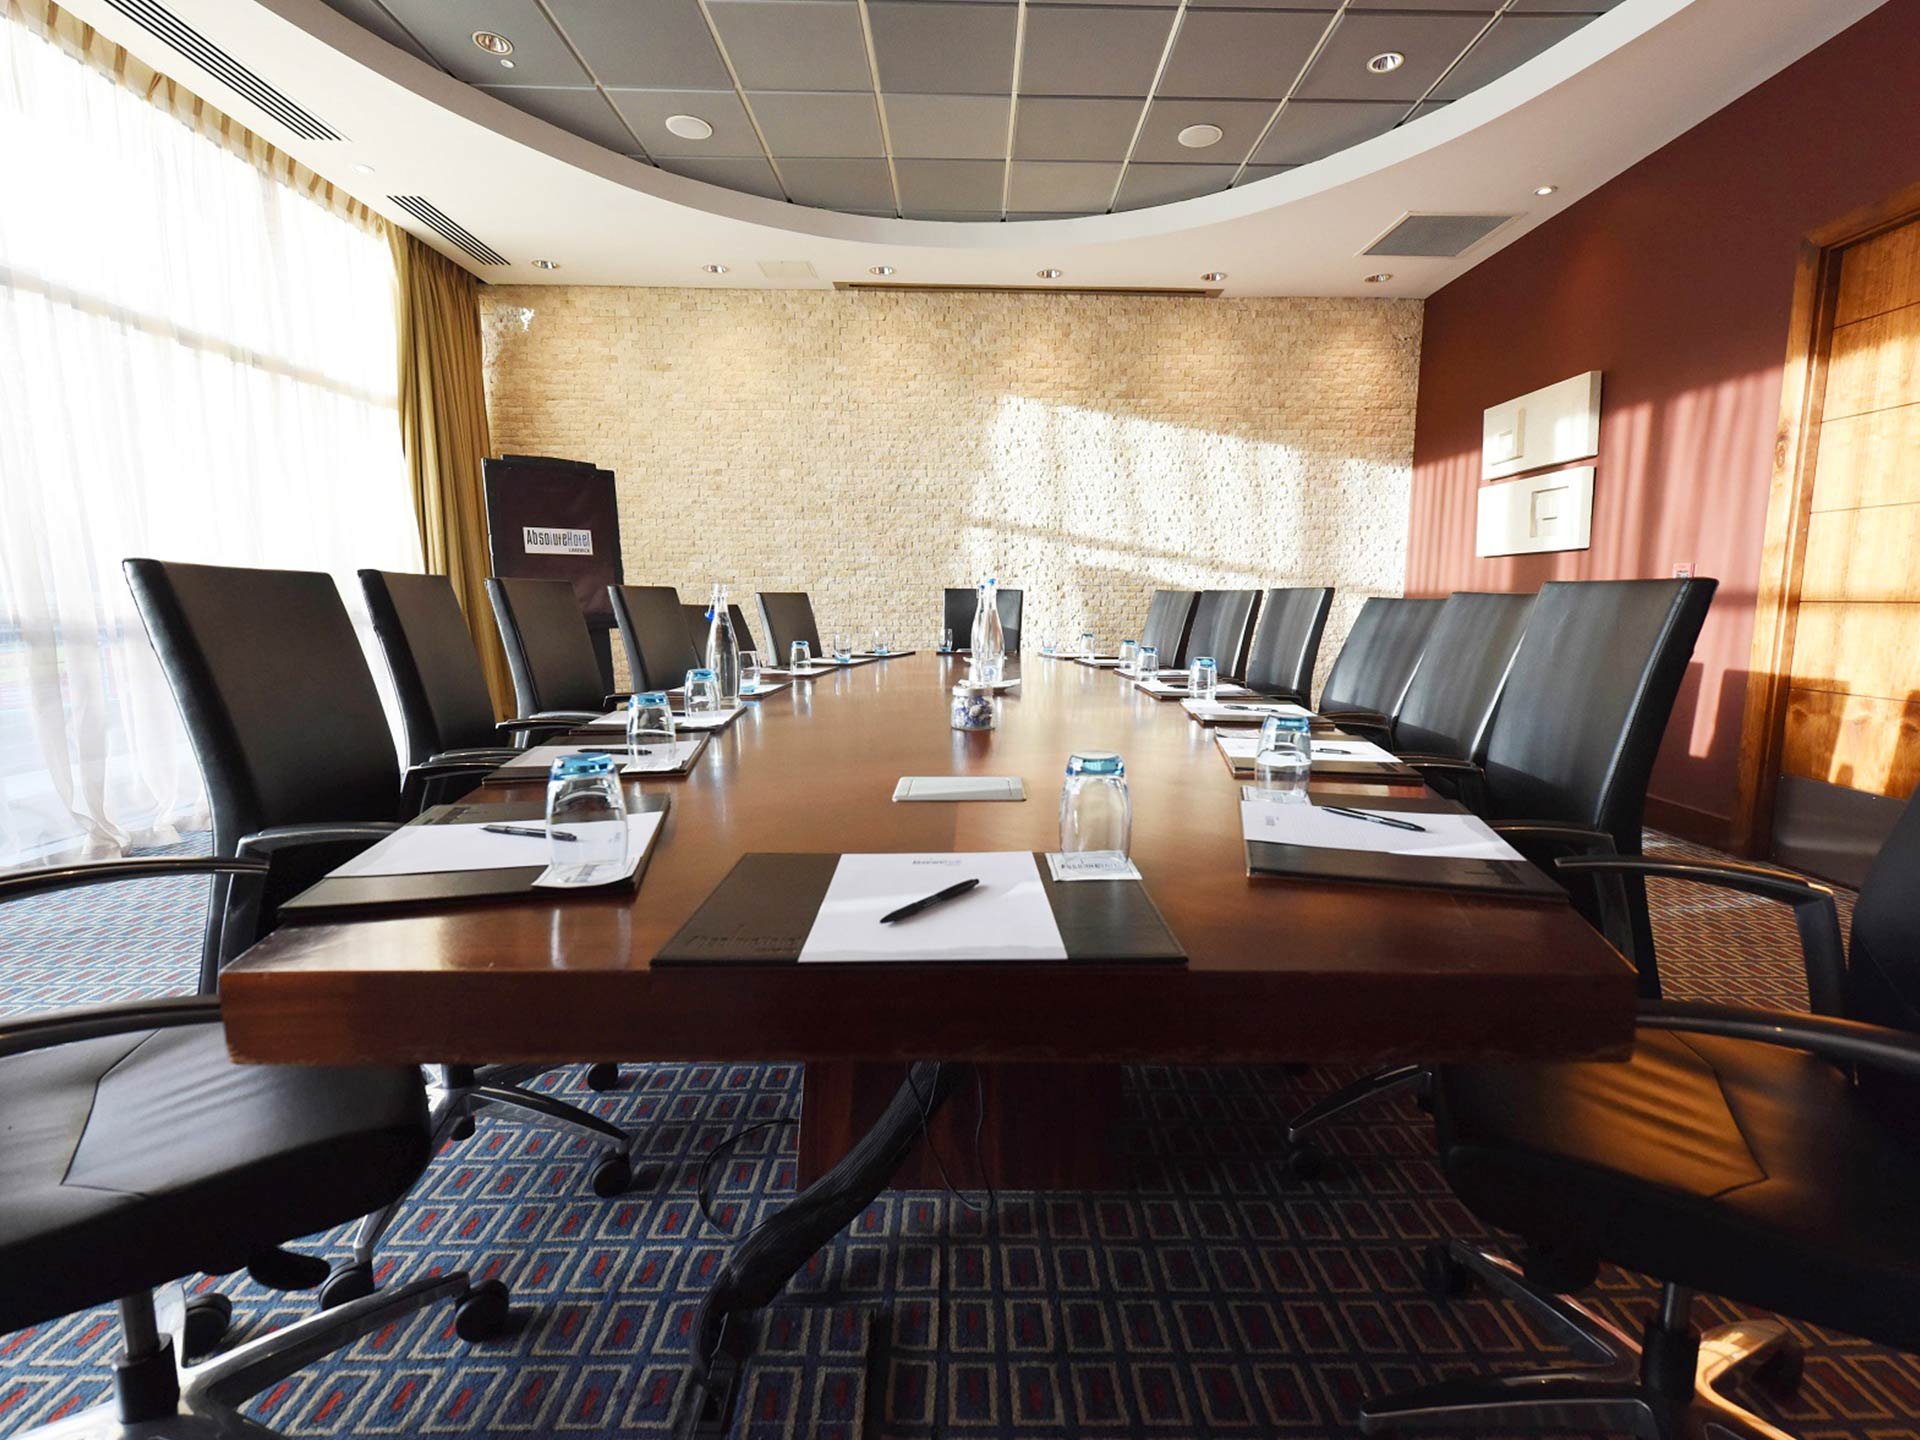 Meeting rooms for hire limerick absolute hotel - Interior design ideas for conference rooms ...